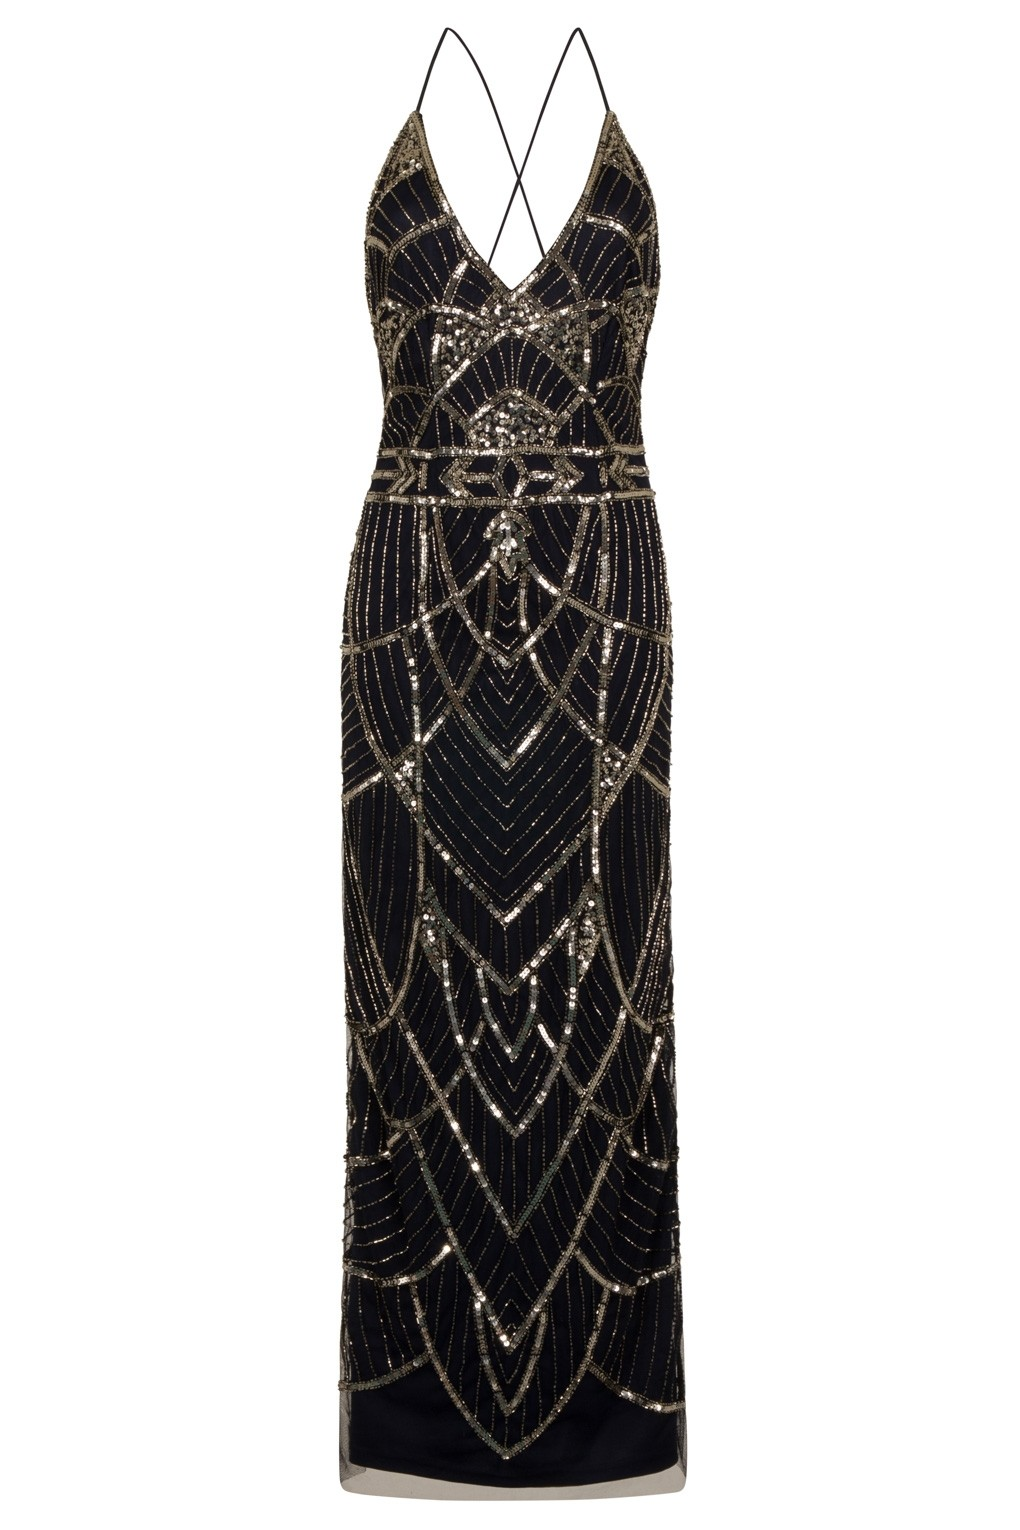 142c9aaee861c LACE & BEADS MAGGIE EMBELLISHED DARK BLUE MAXI DRESS | LACE&BEADS DRESS